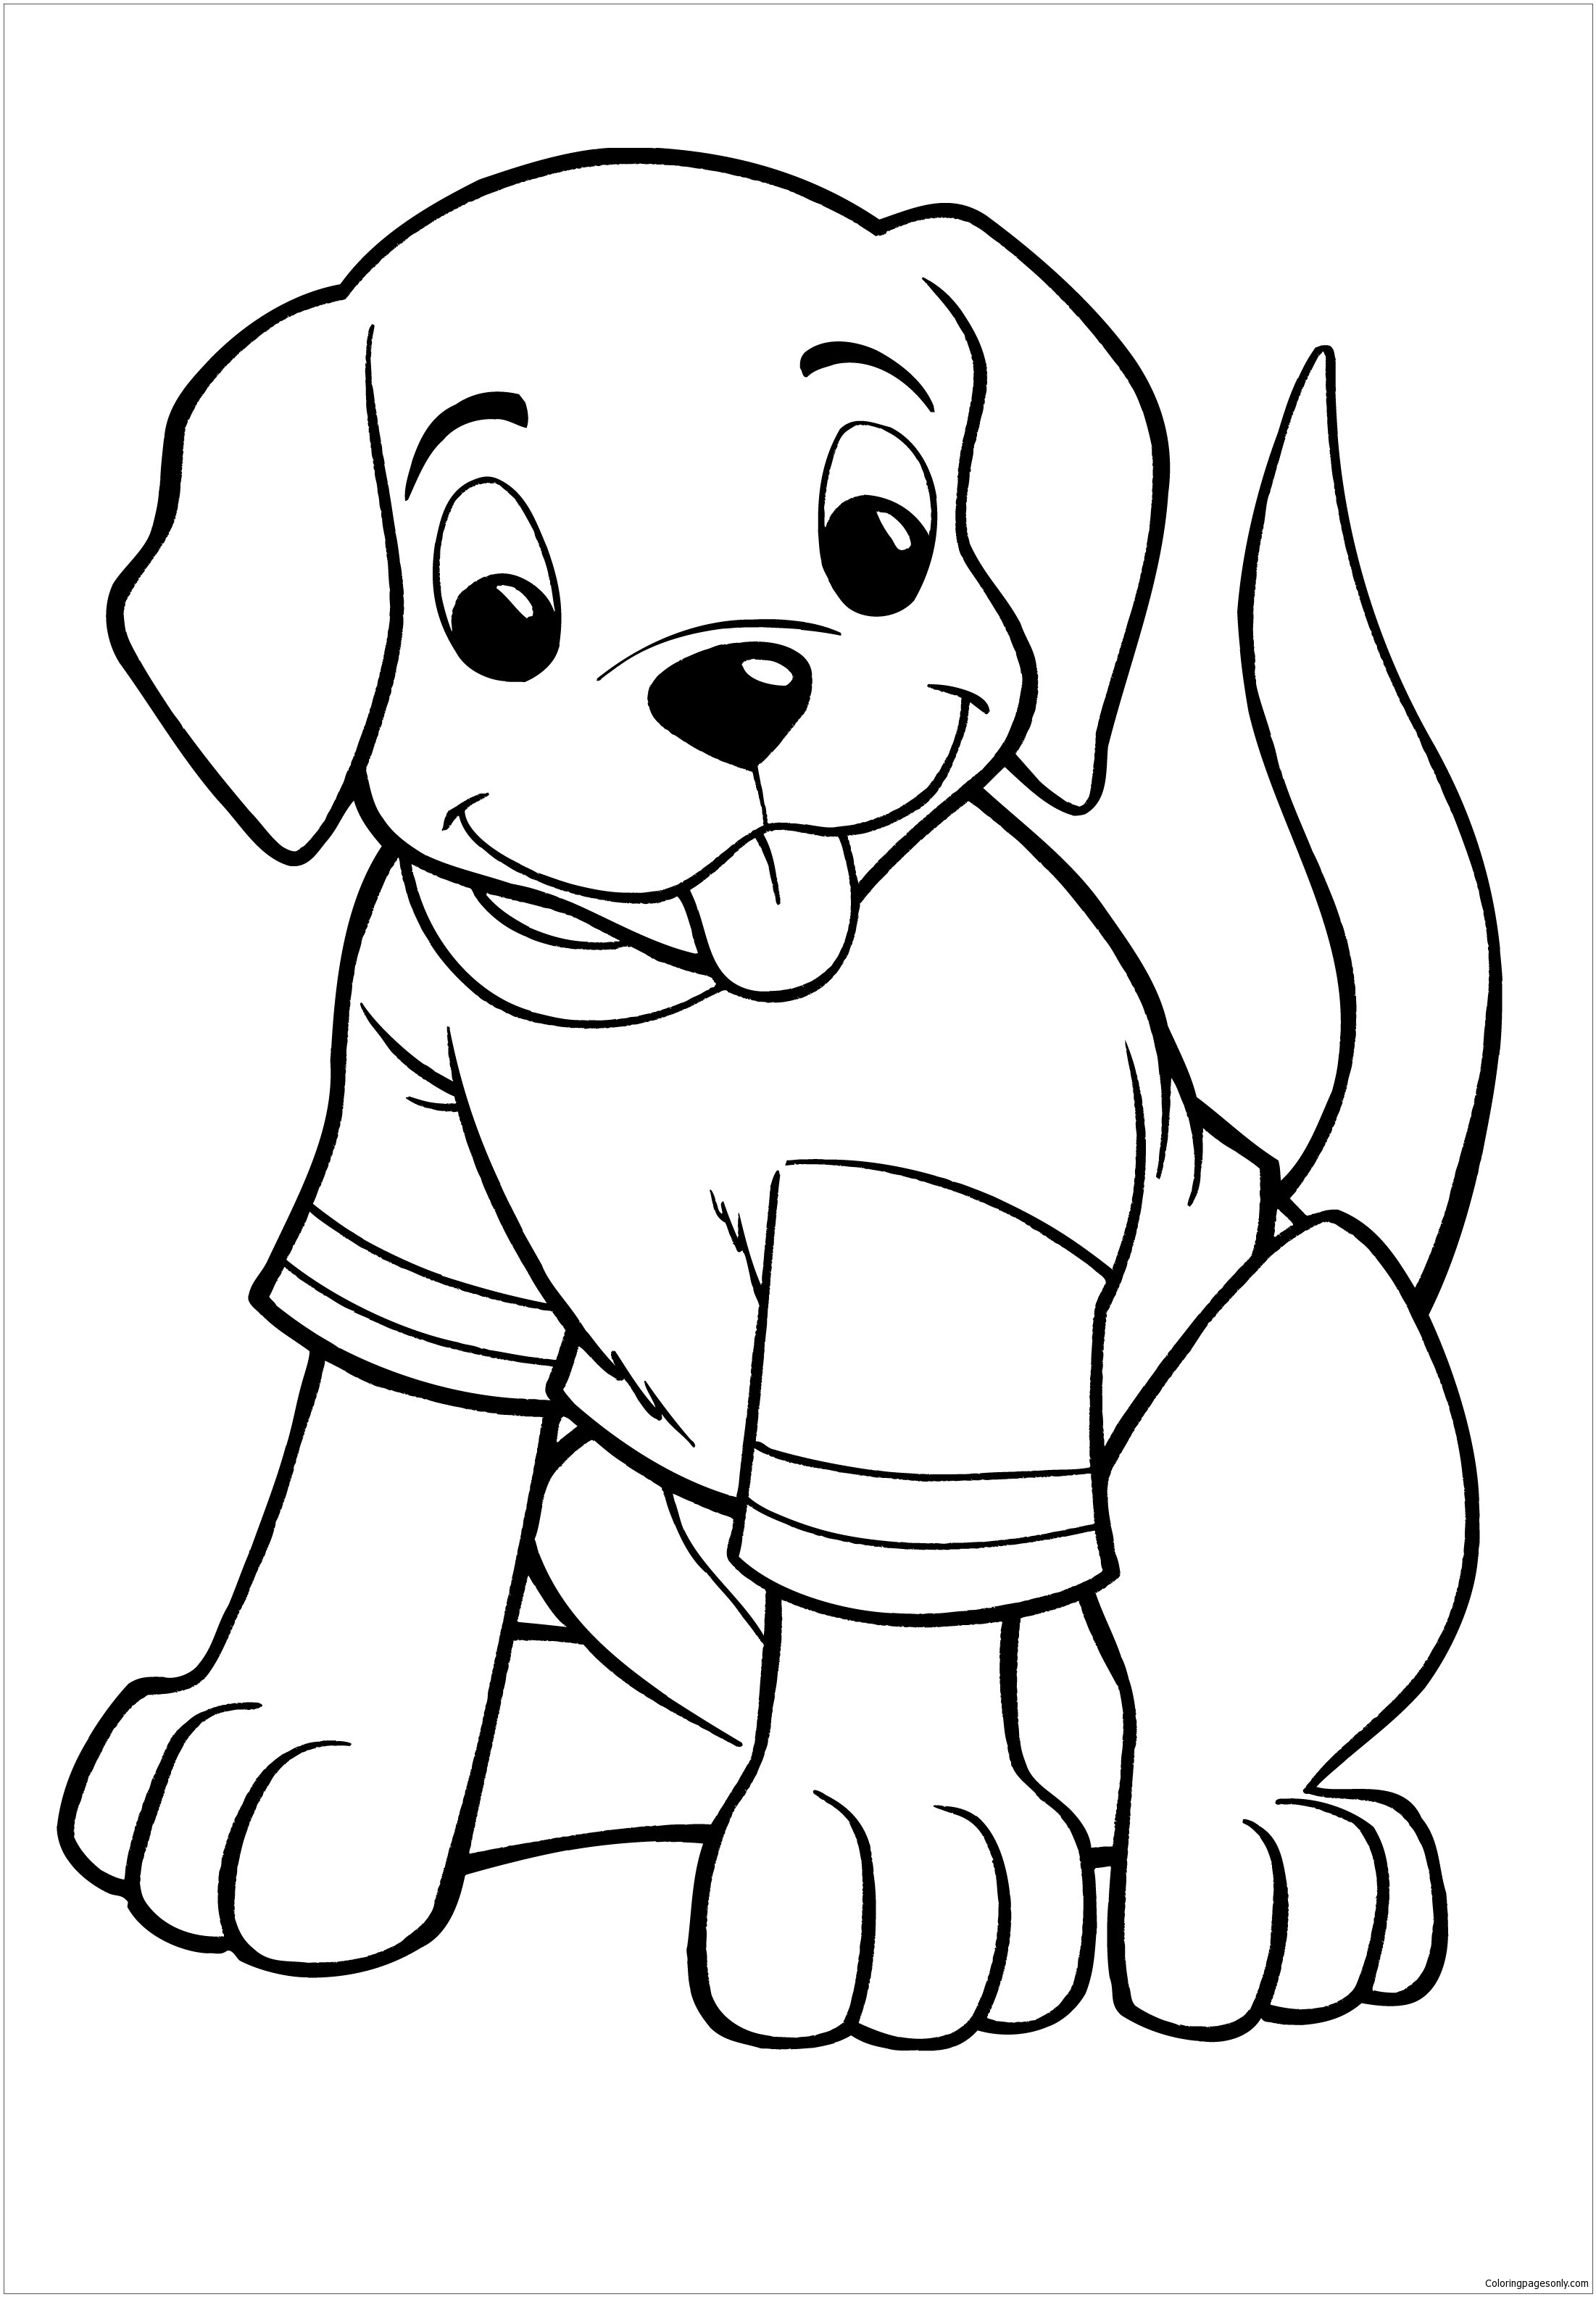 a coloring page of a dog sad puppy coloring pages at getcoloringscom free a of coloring page a dog